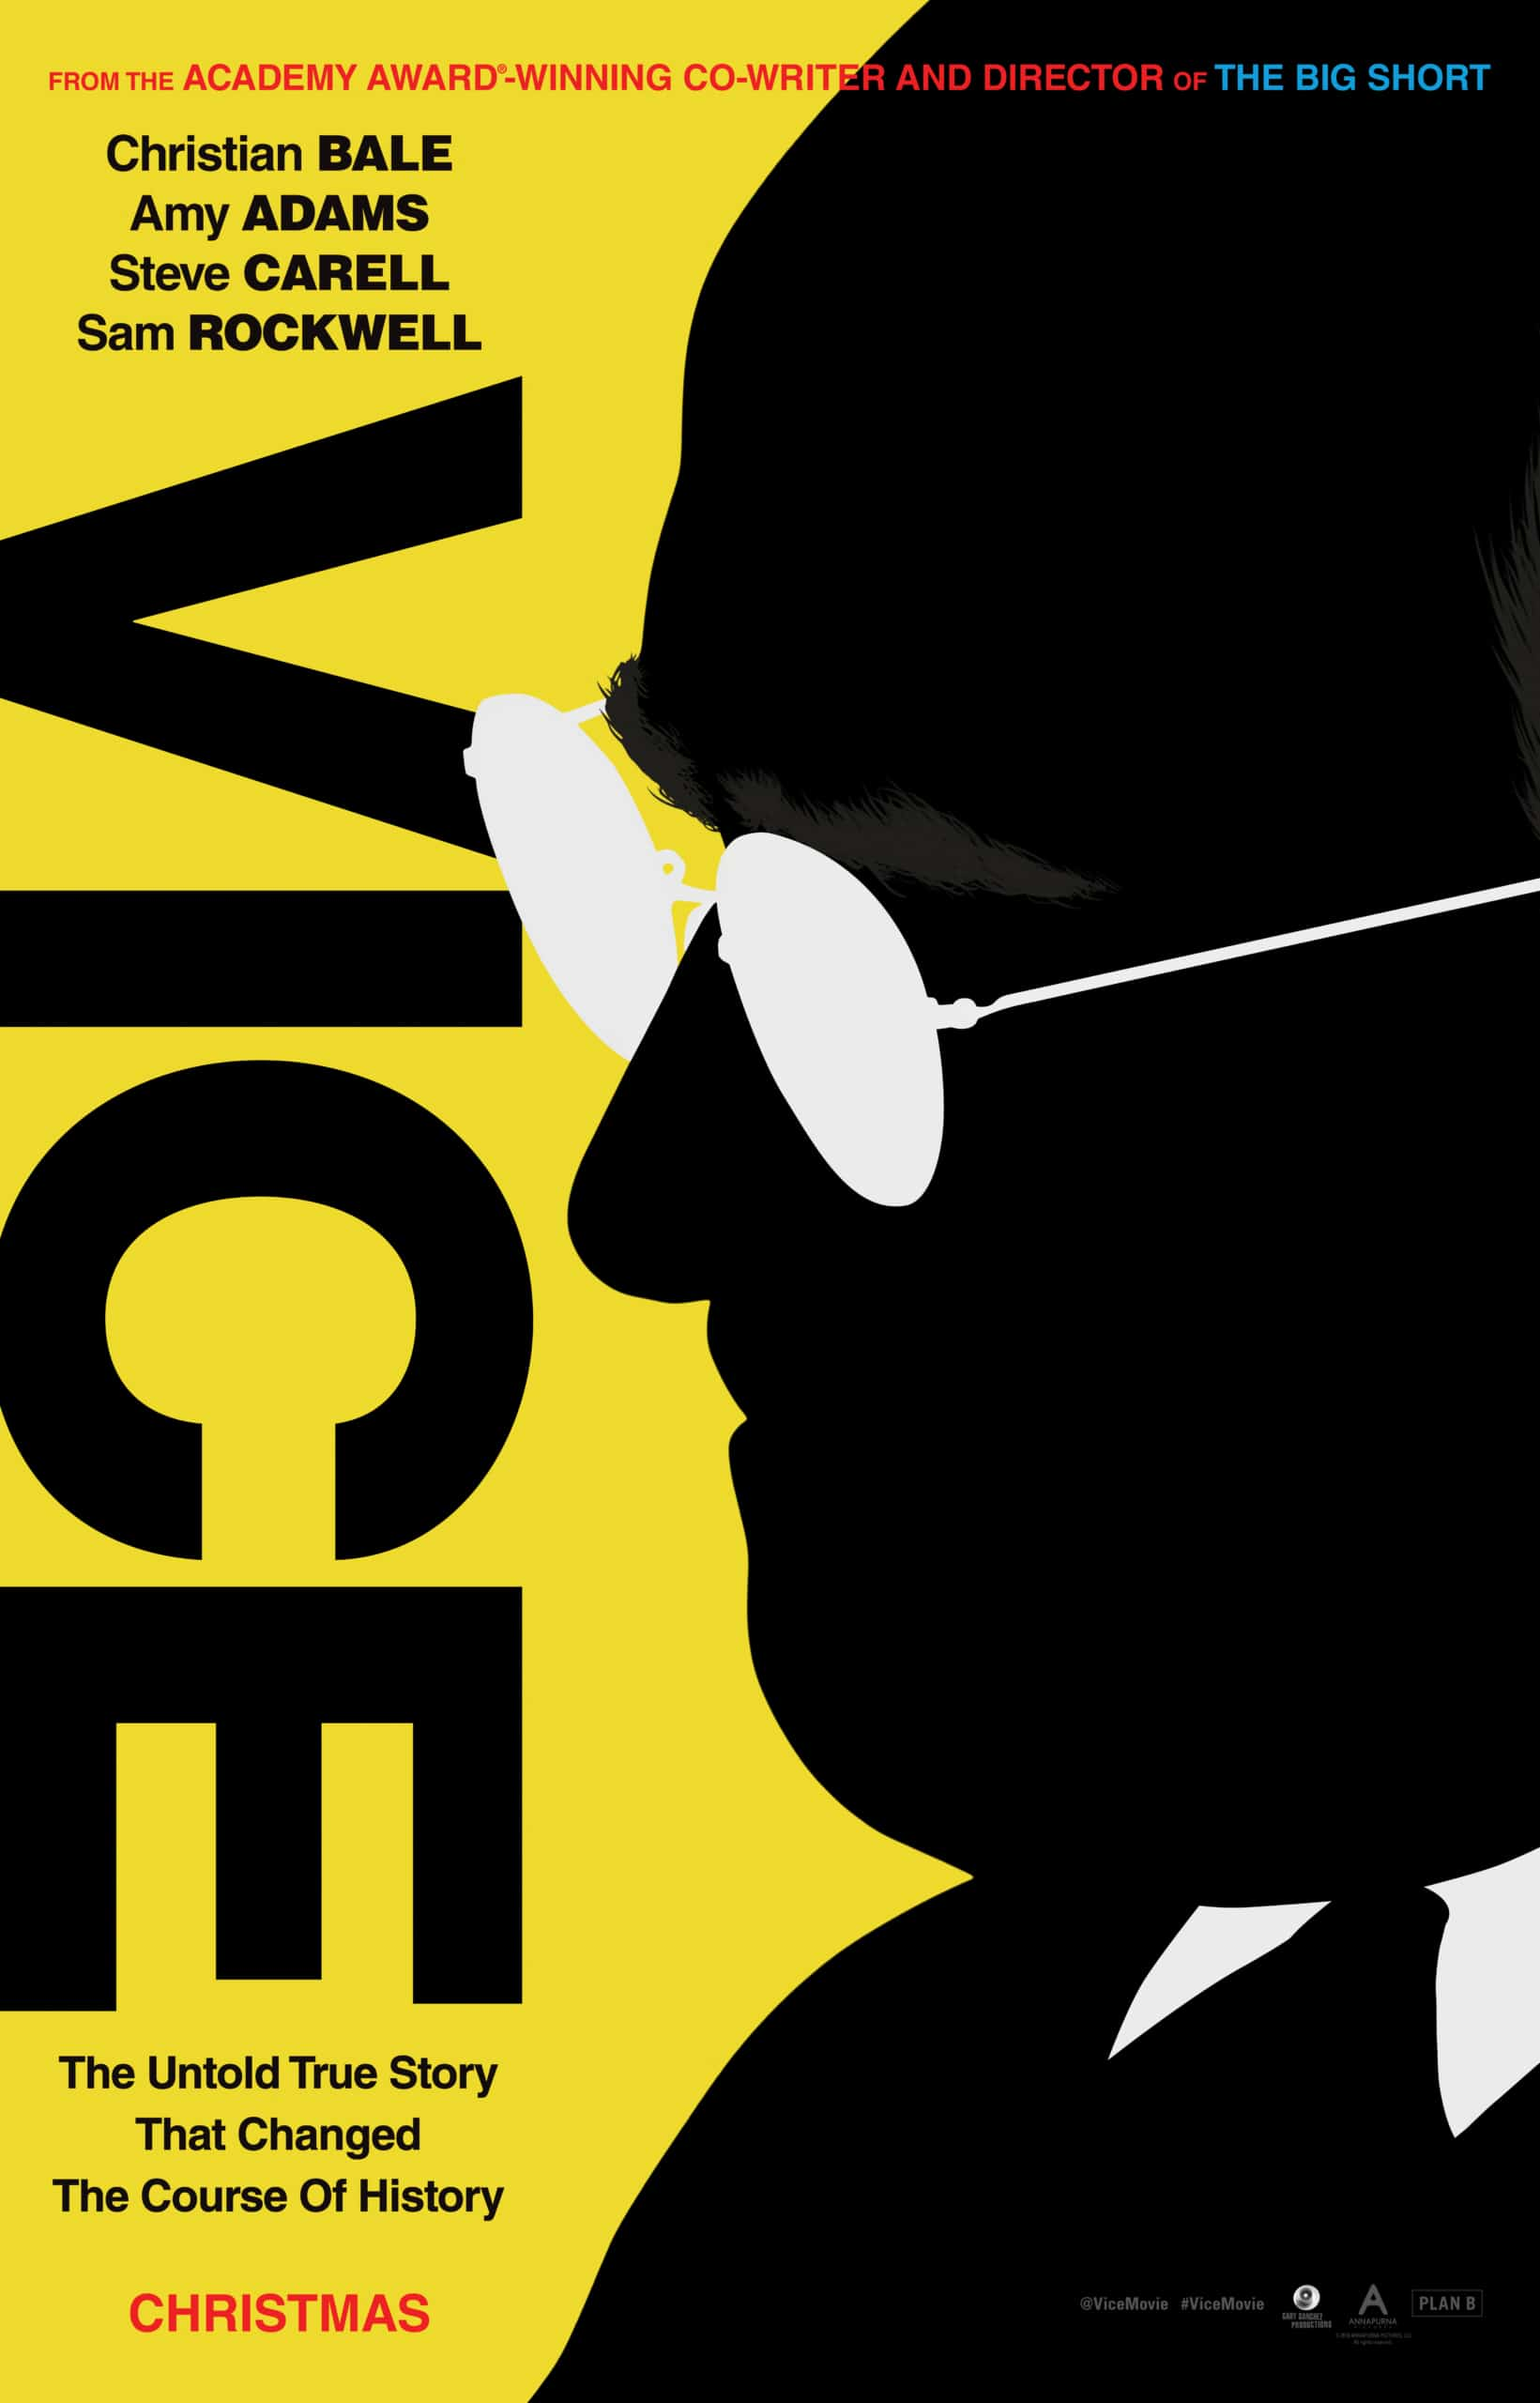 Vice full size high res poster December 2018 release